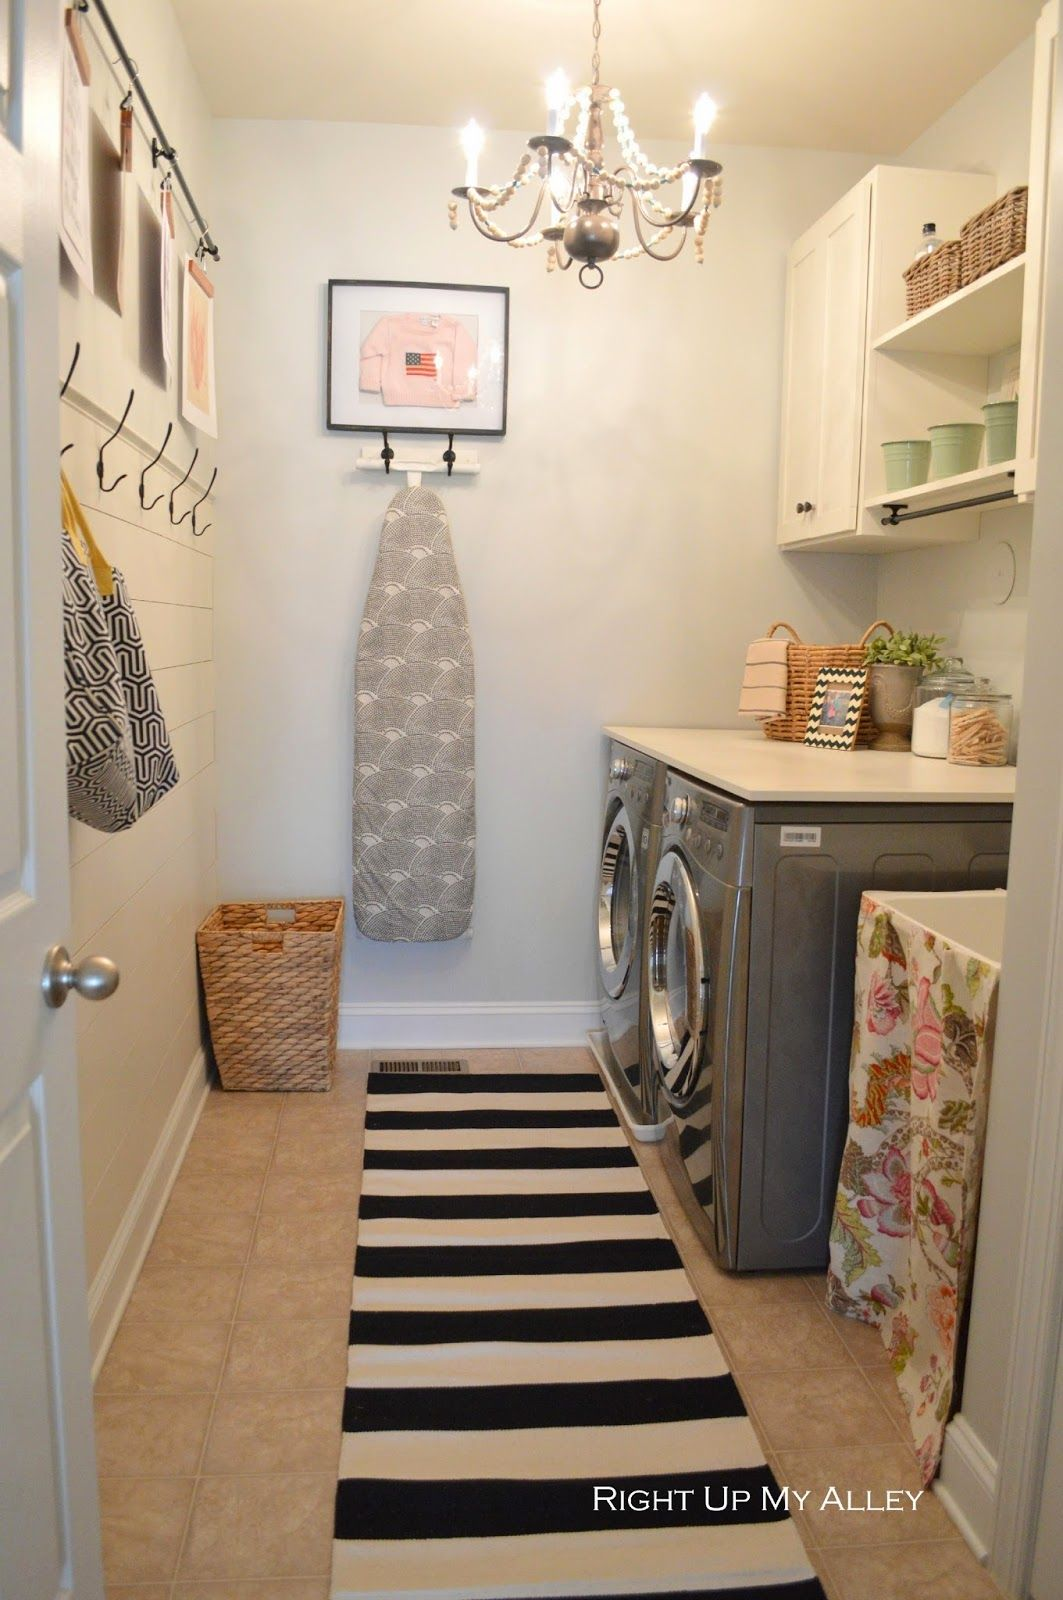 Pictures For Laundry Room Walls 7 Creative Makeover Ideas For Your Laundry Room  Ship Lap Walls